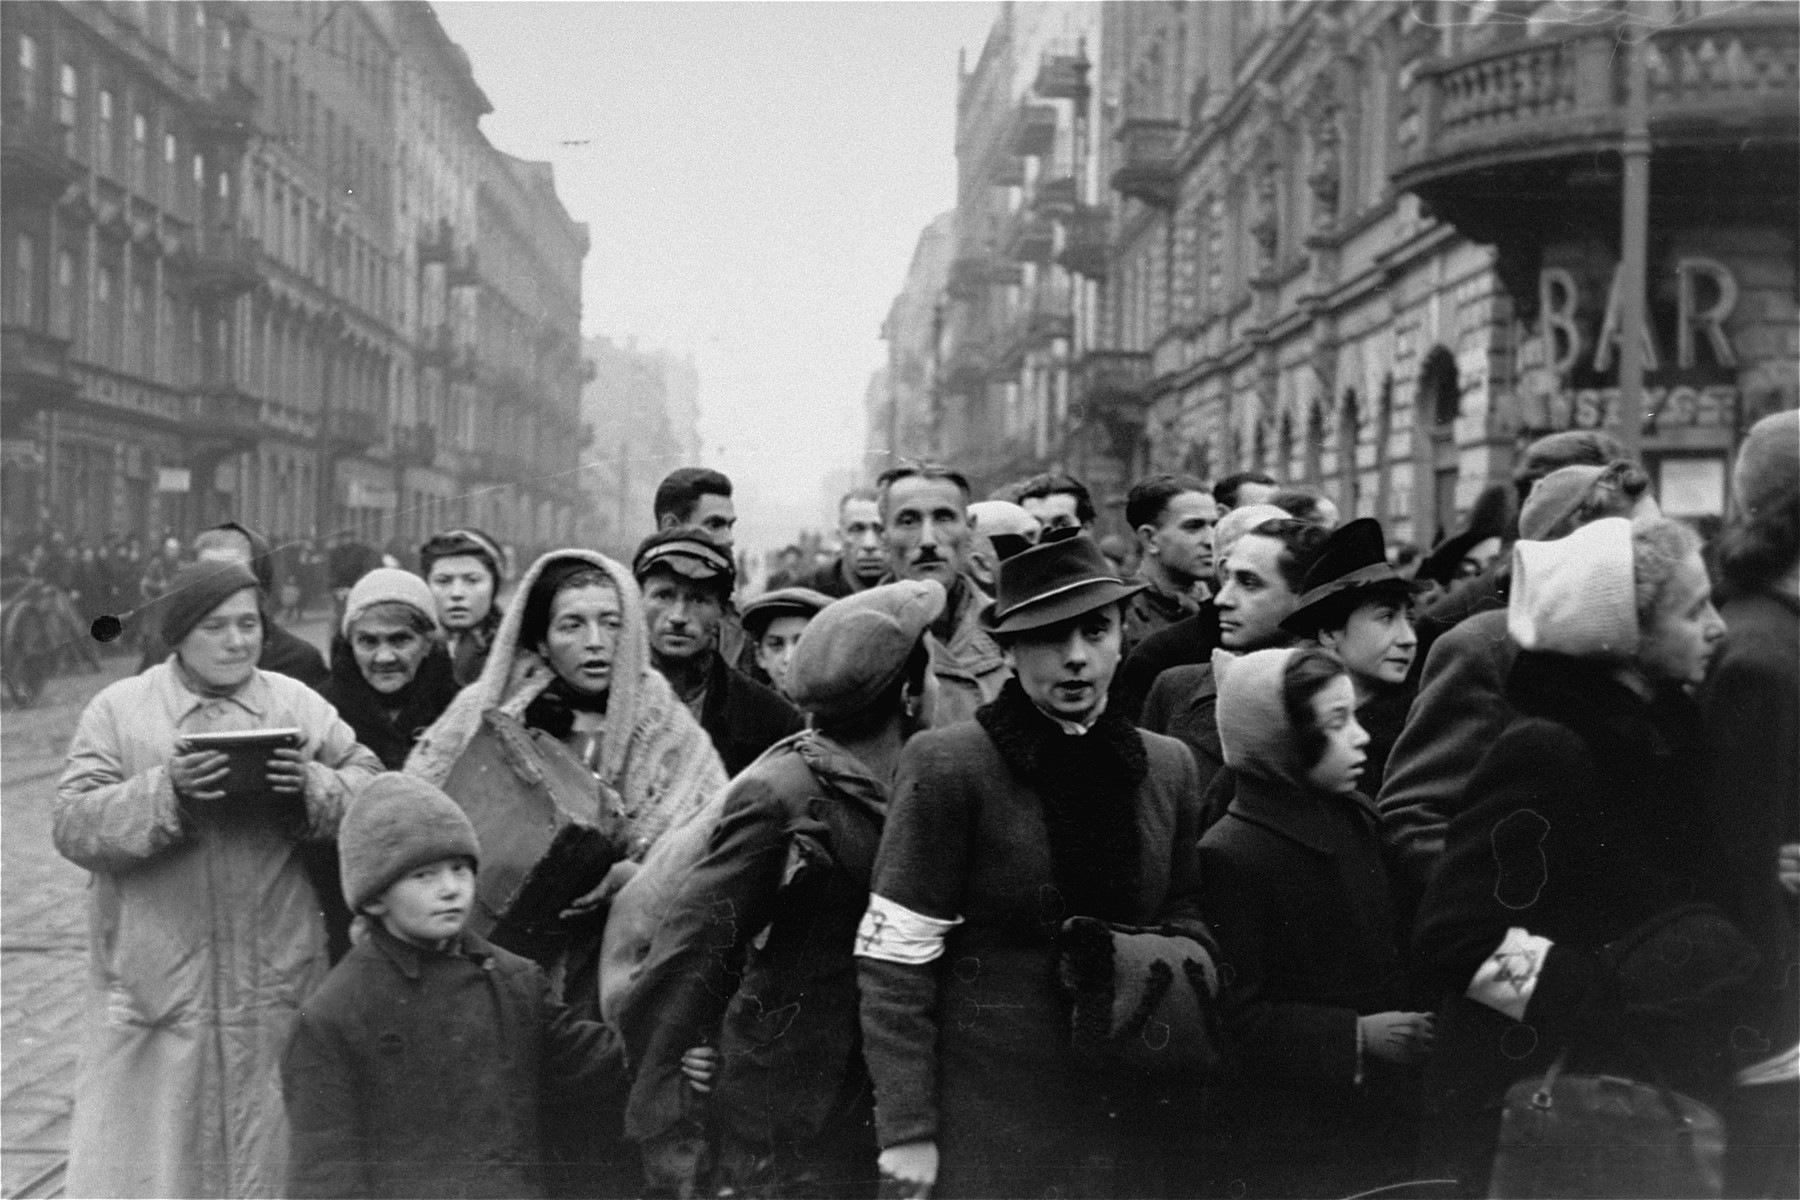 Jews are gathered at the intersection of Karmelicka and Nowolipki Streets in the Warsaw ghetto.